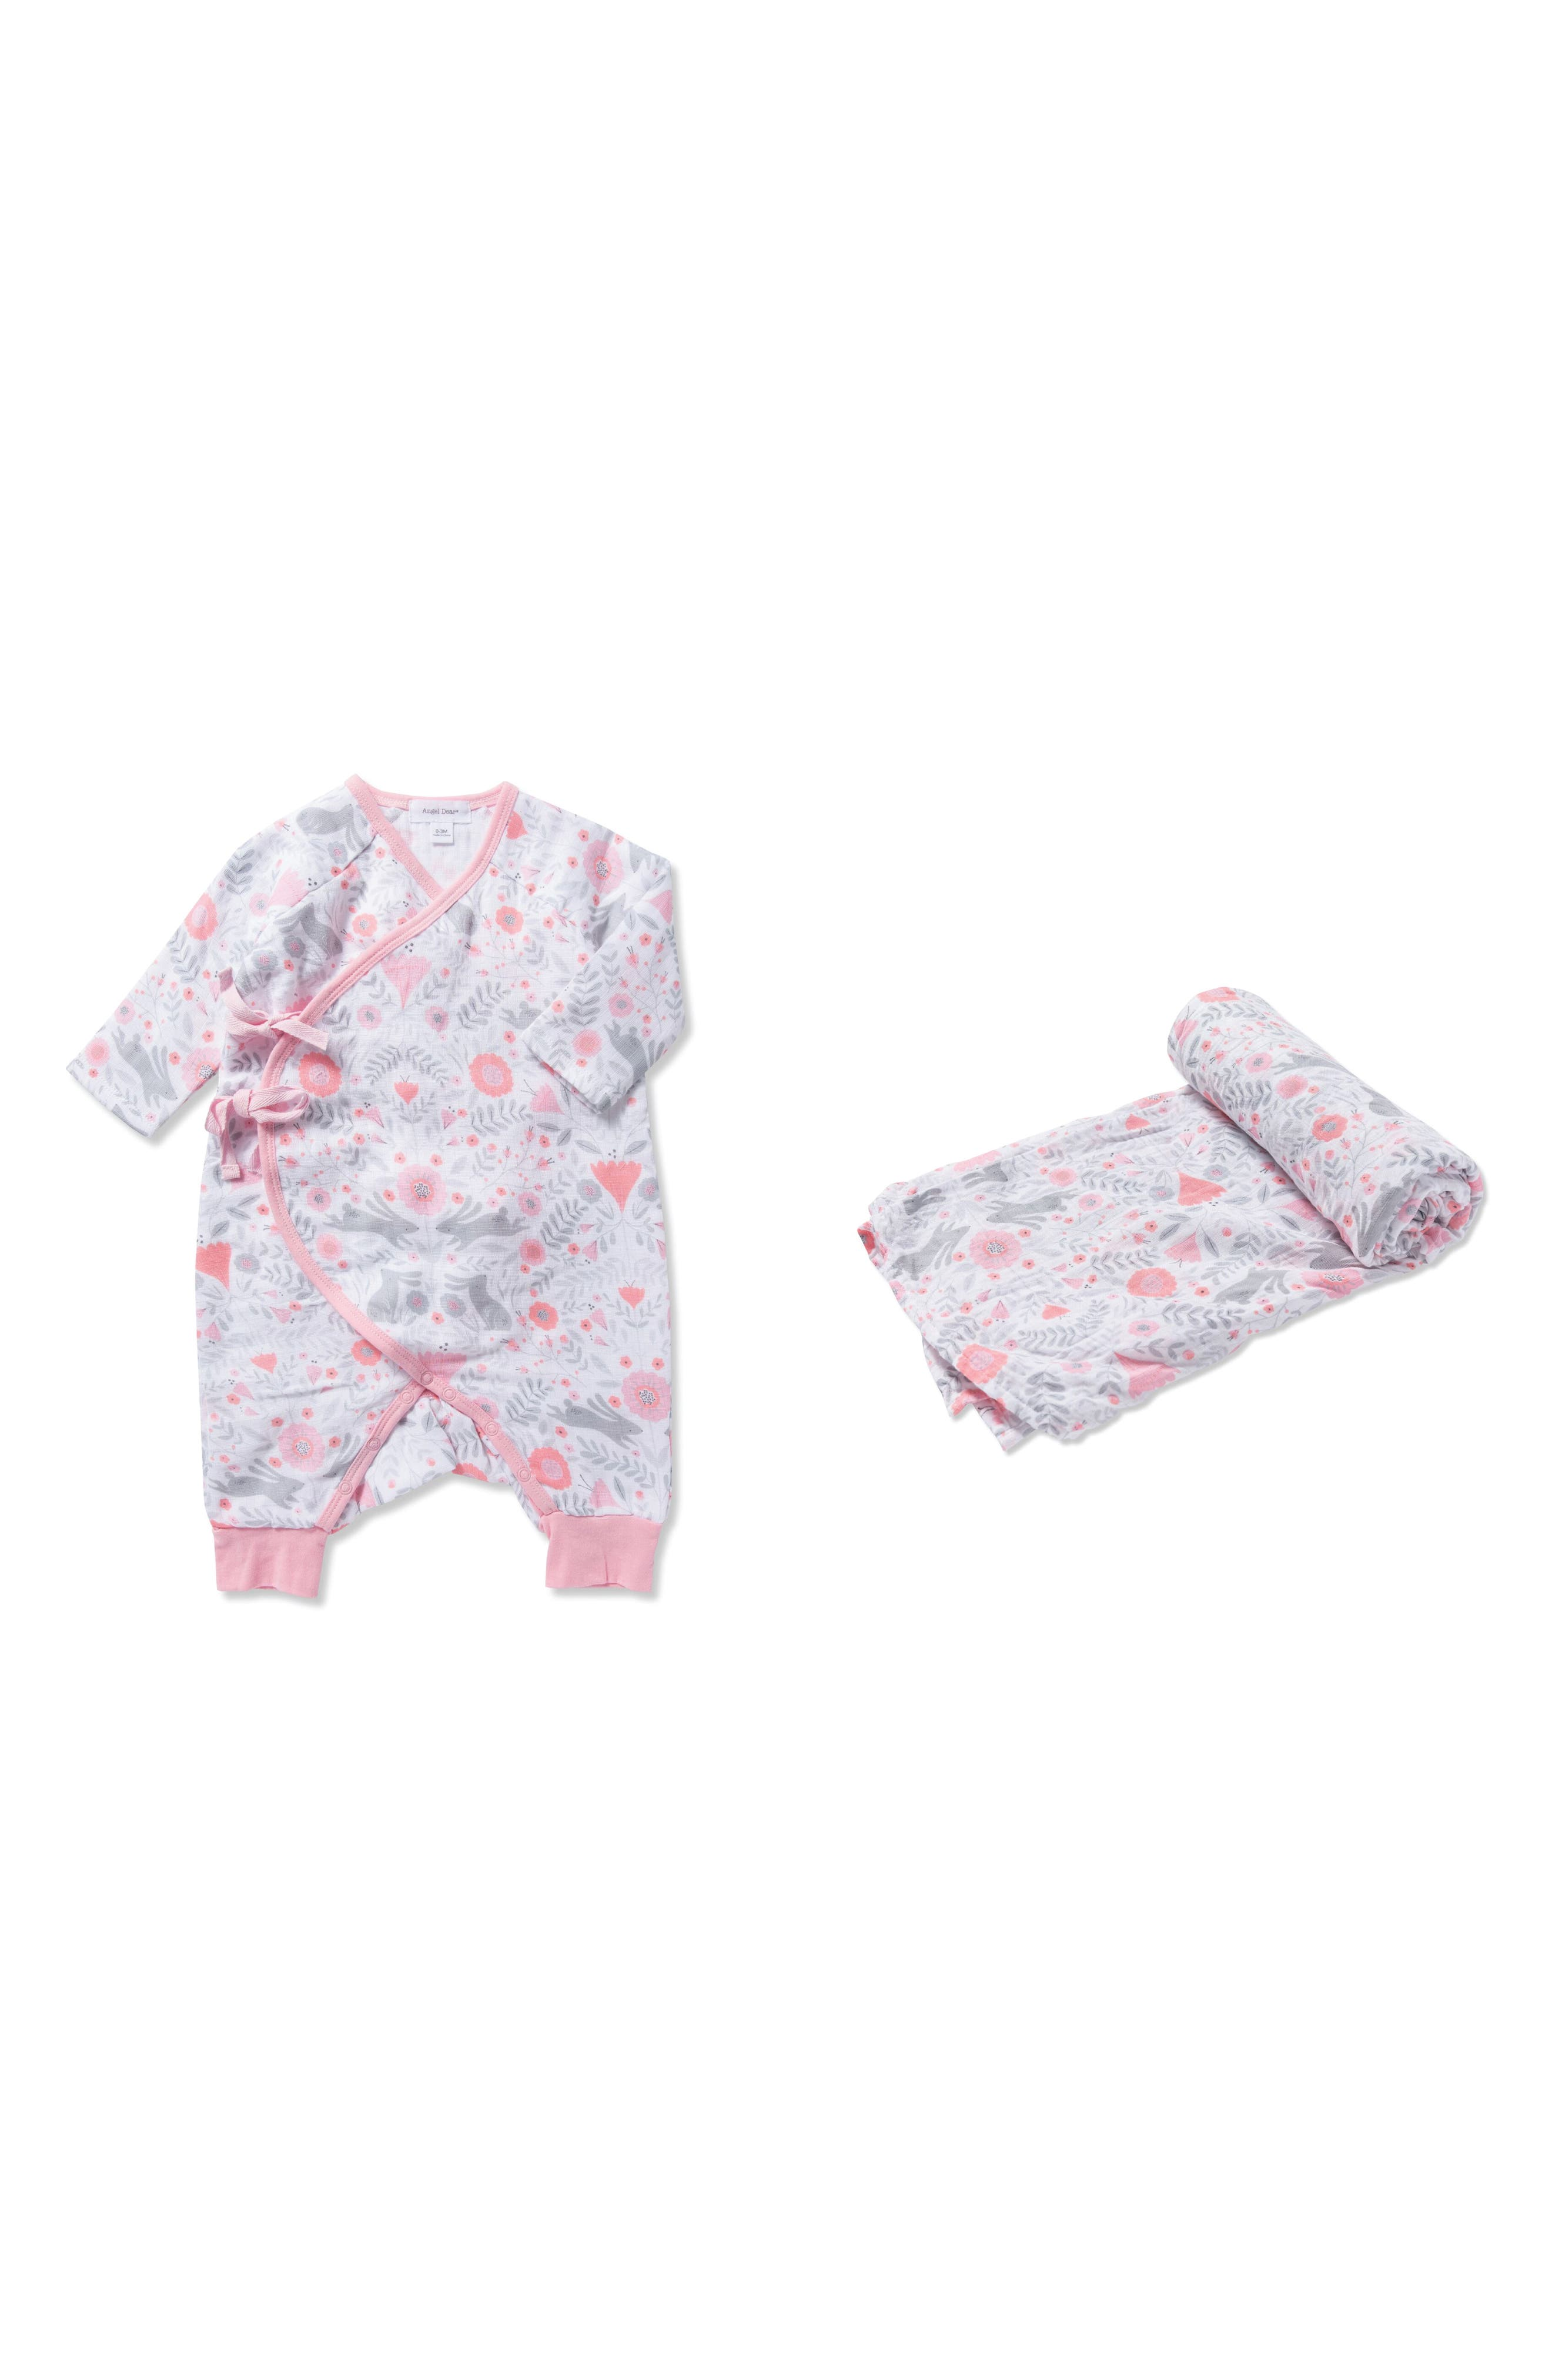 Bunny Print Romper & Swaddling Blanket Set,                             Main thumbnail 1, color,                             686